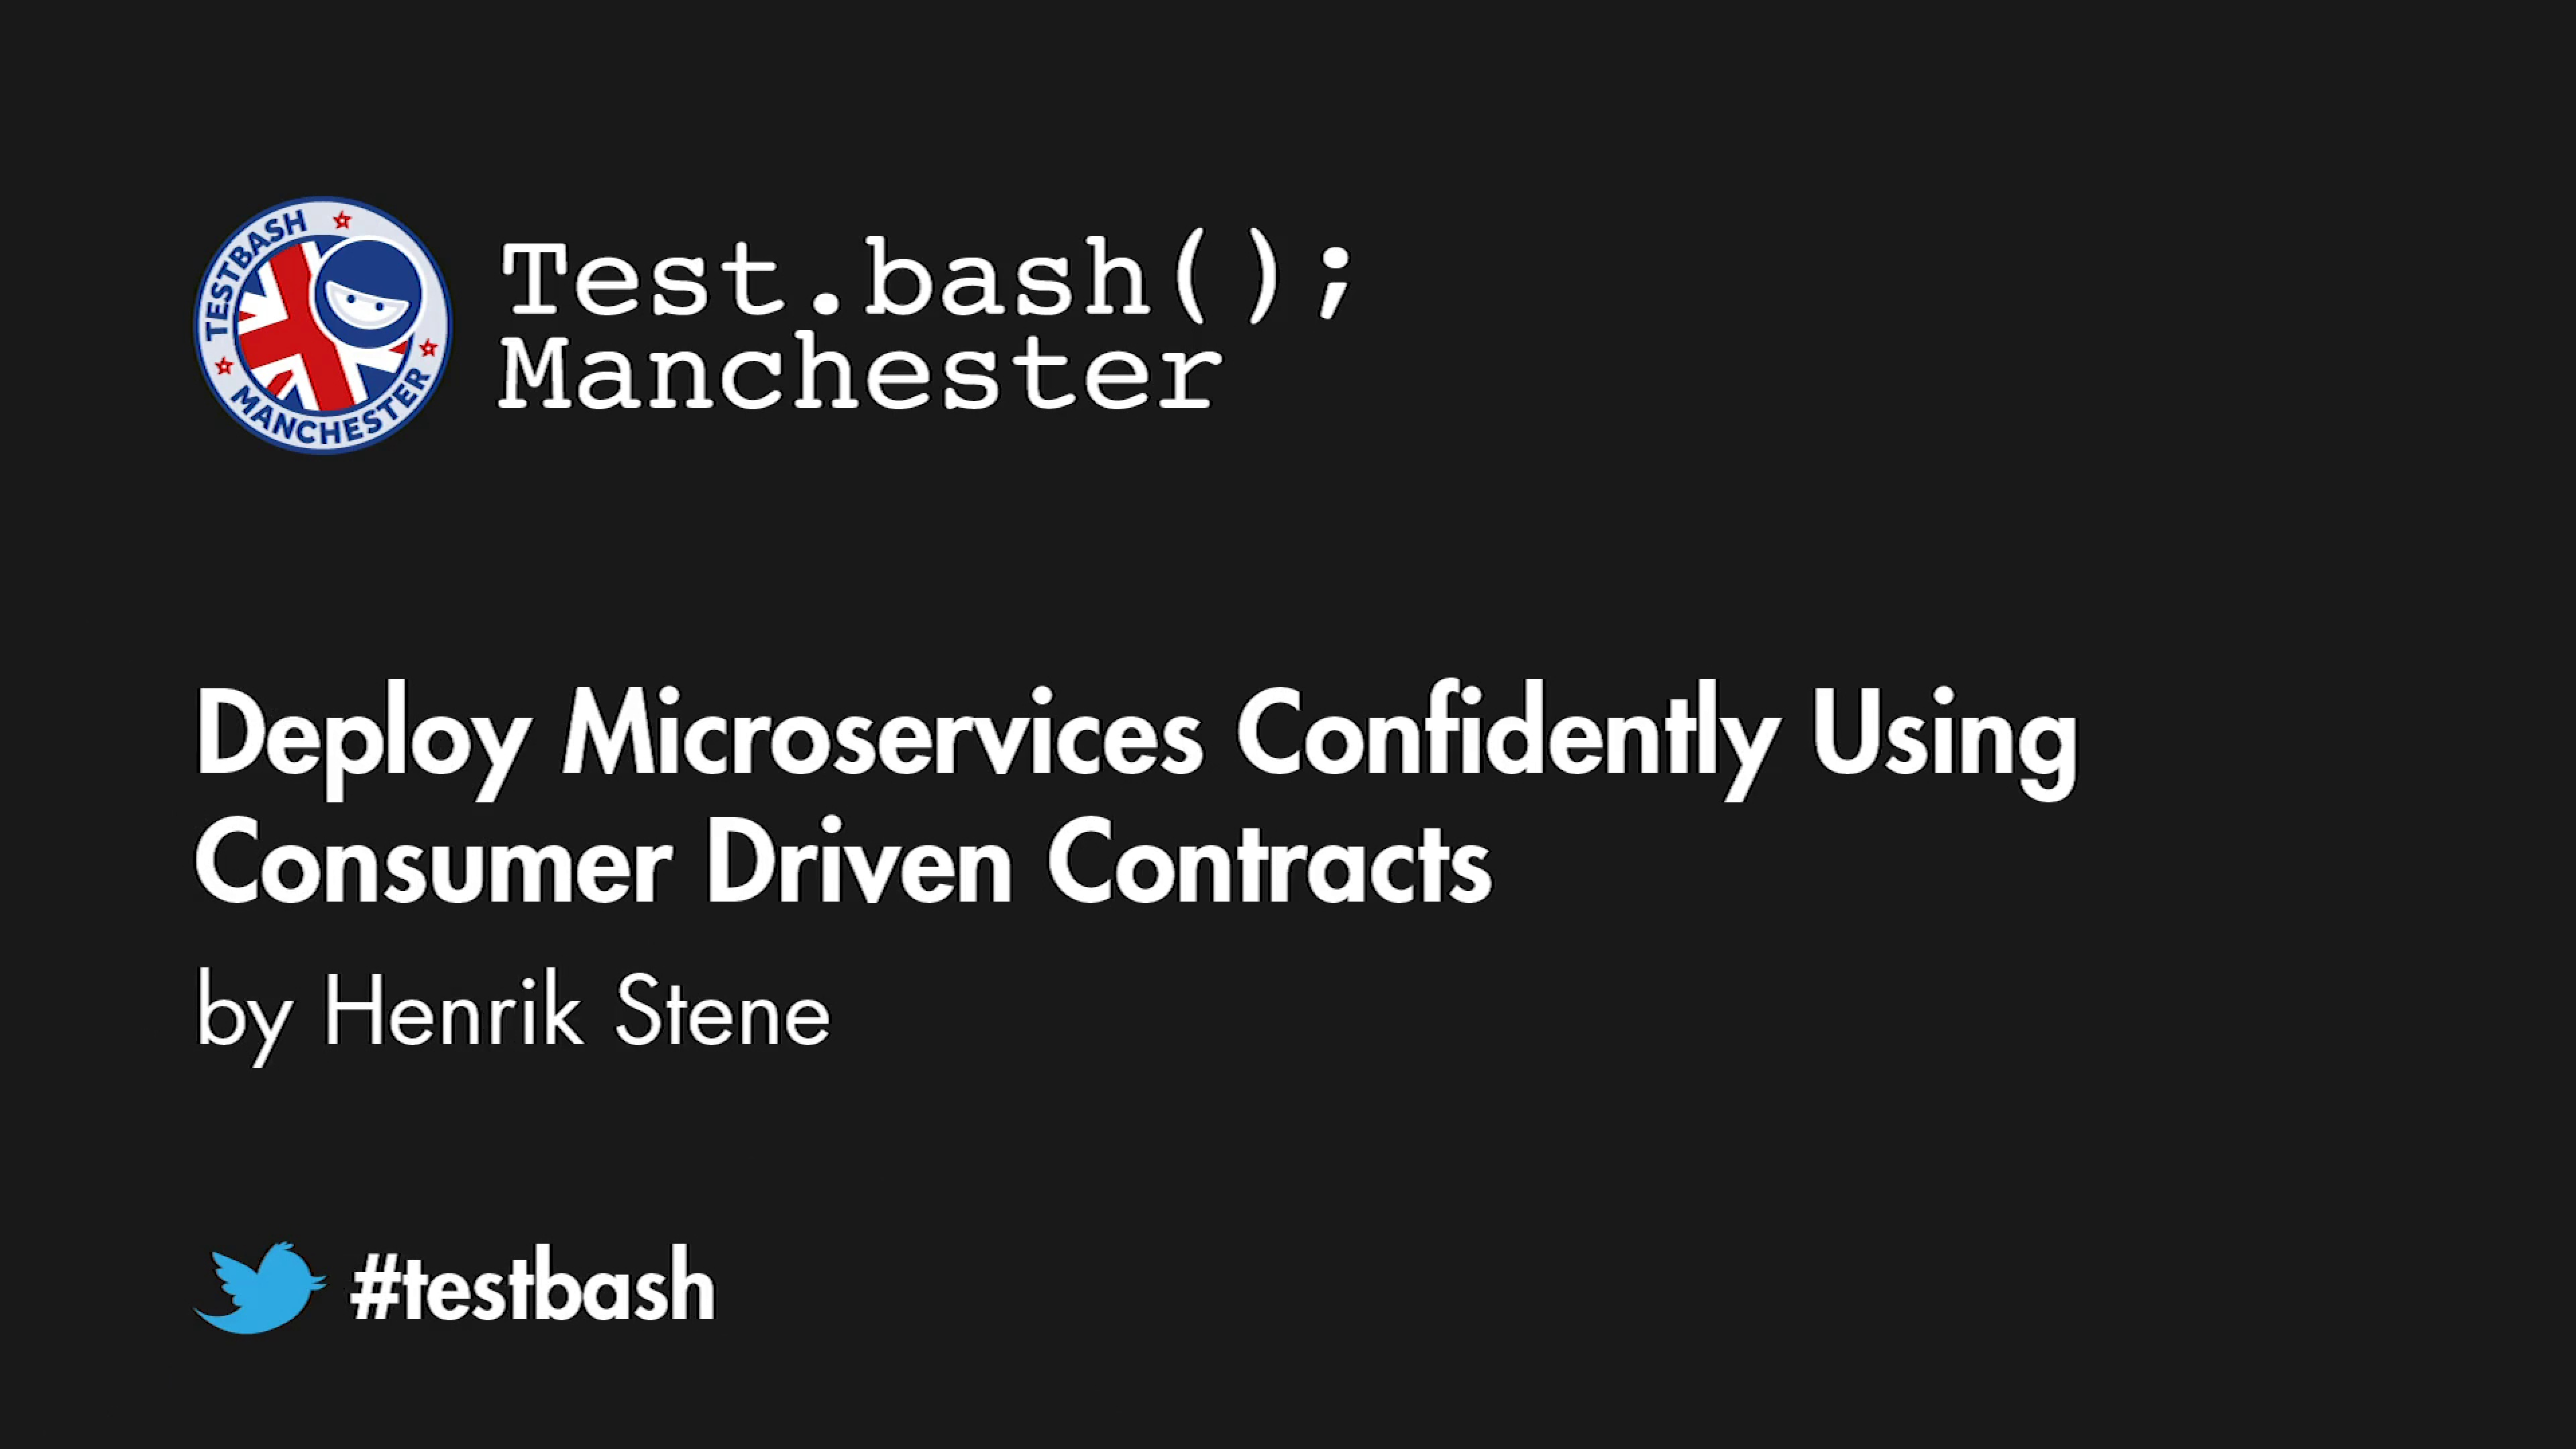 Deploy Microservices Confidently Using Consumer Driven Contracts - Henrik Stene